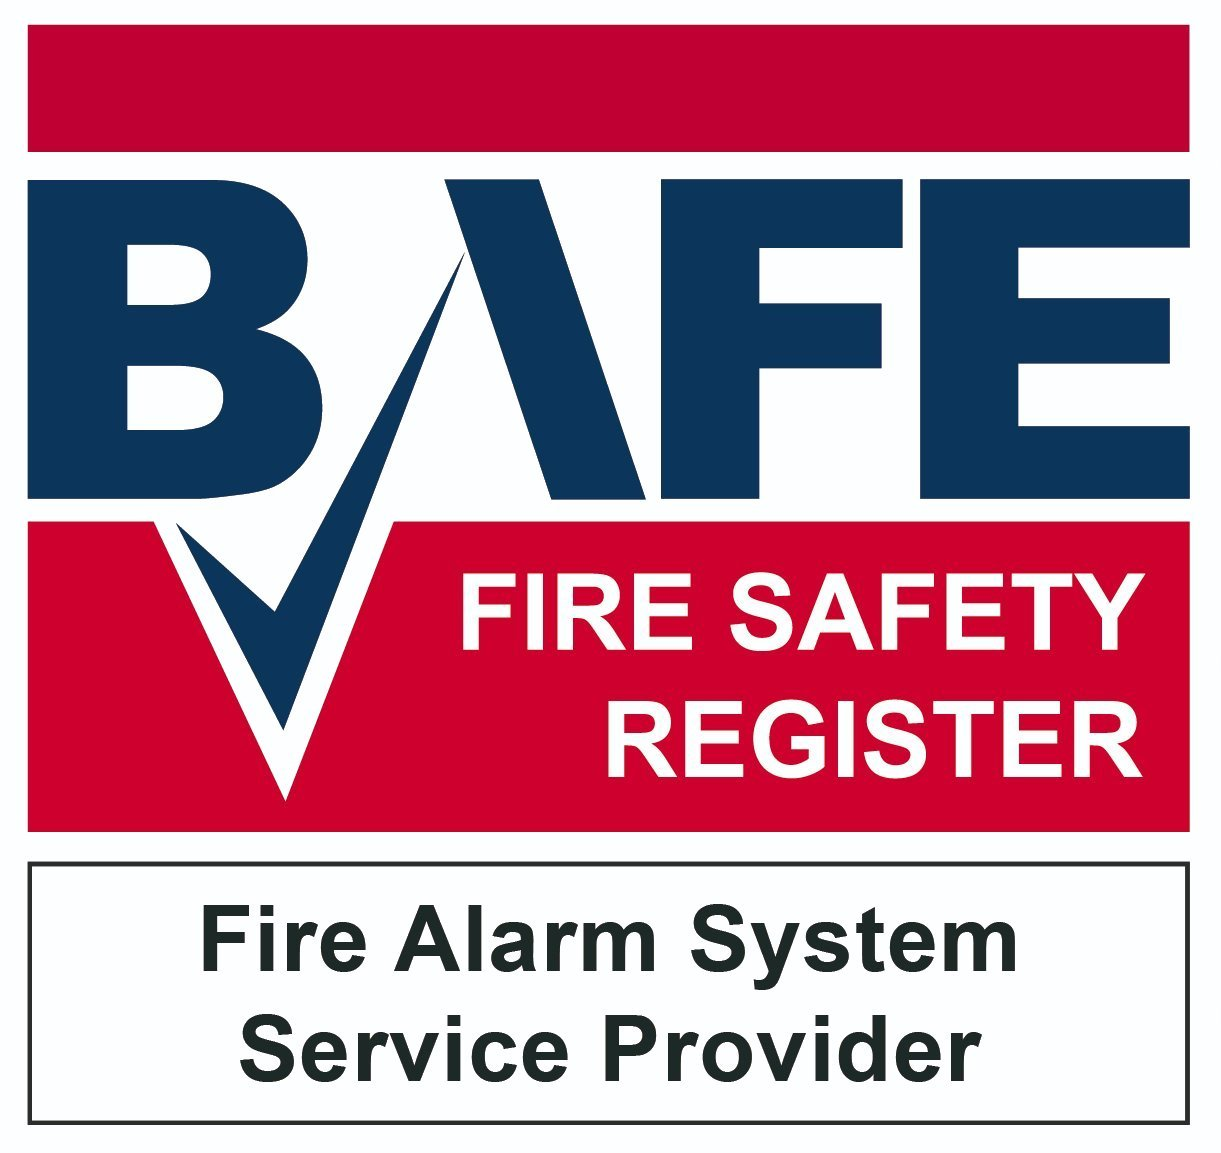 Multicraft Fire & Security Bedfordshire BAFE Certified